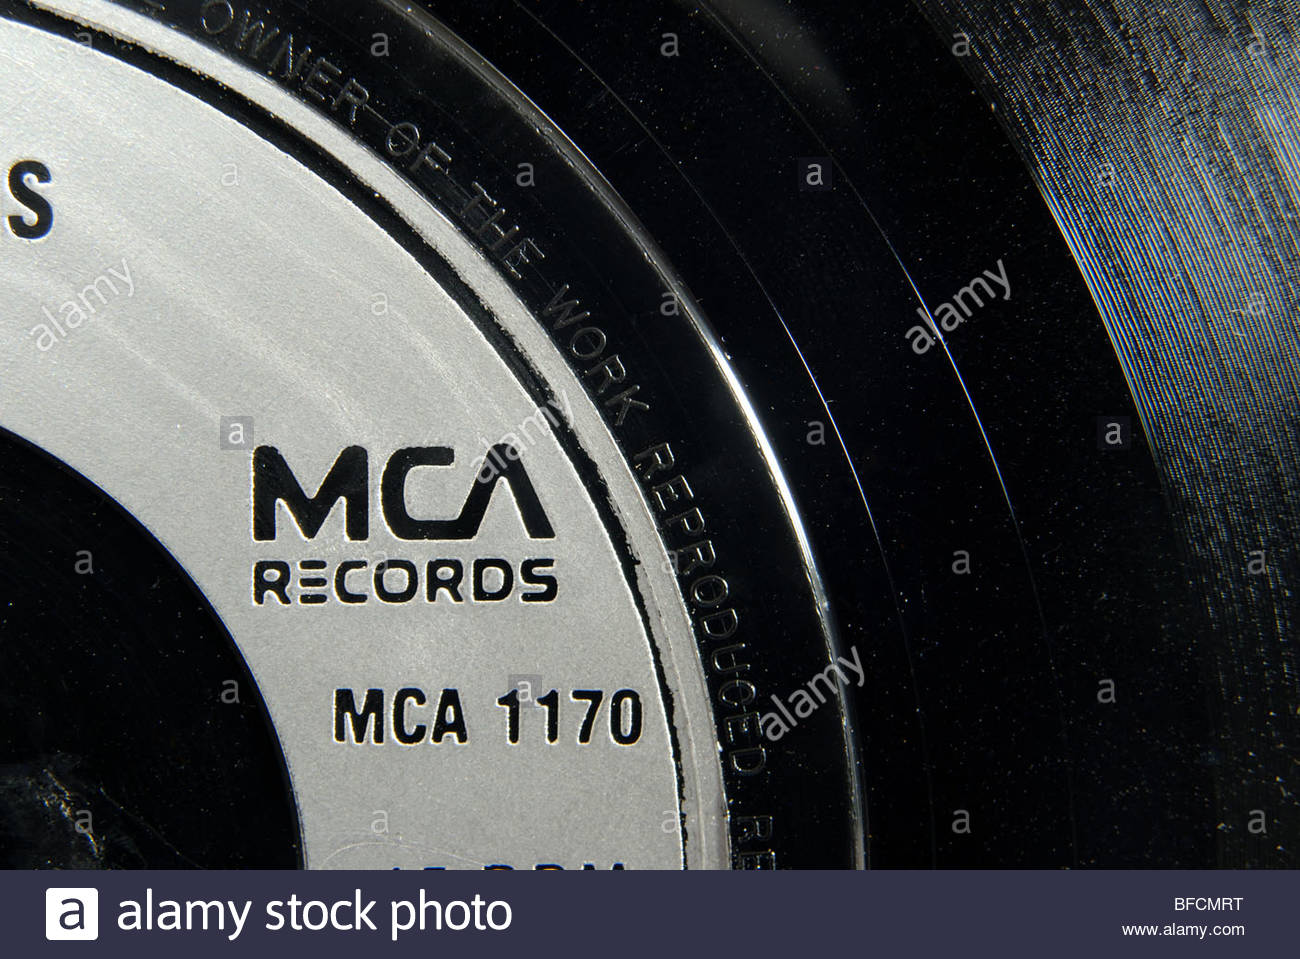 Label of an MCA records 45 rpm record. Stock Photo